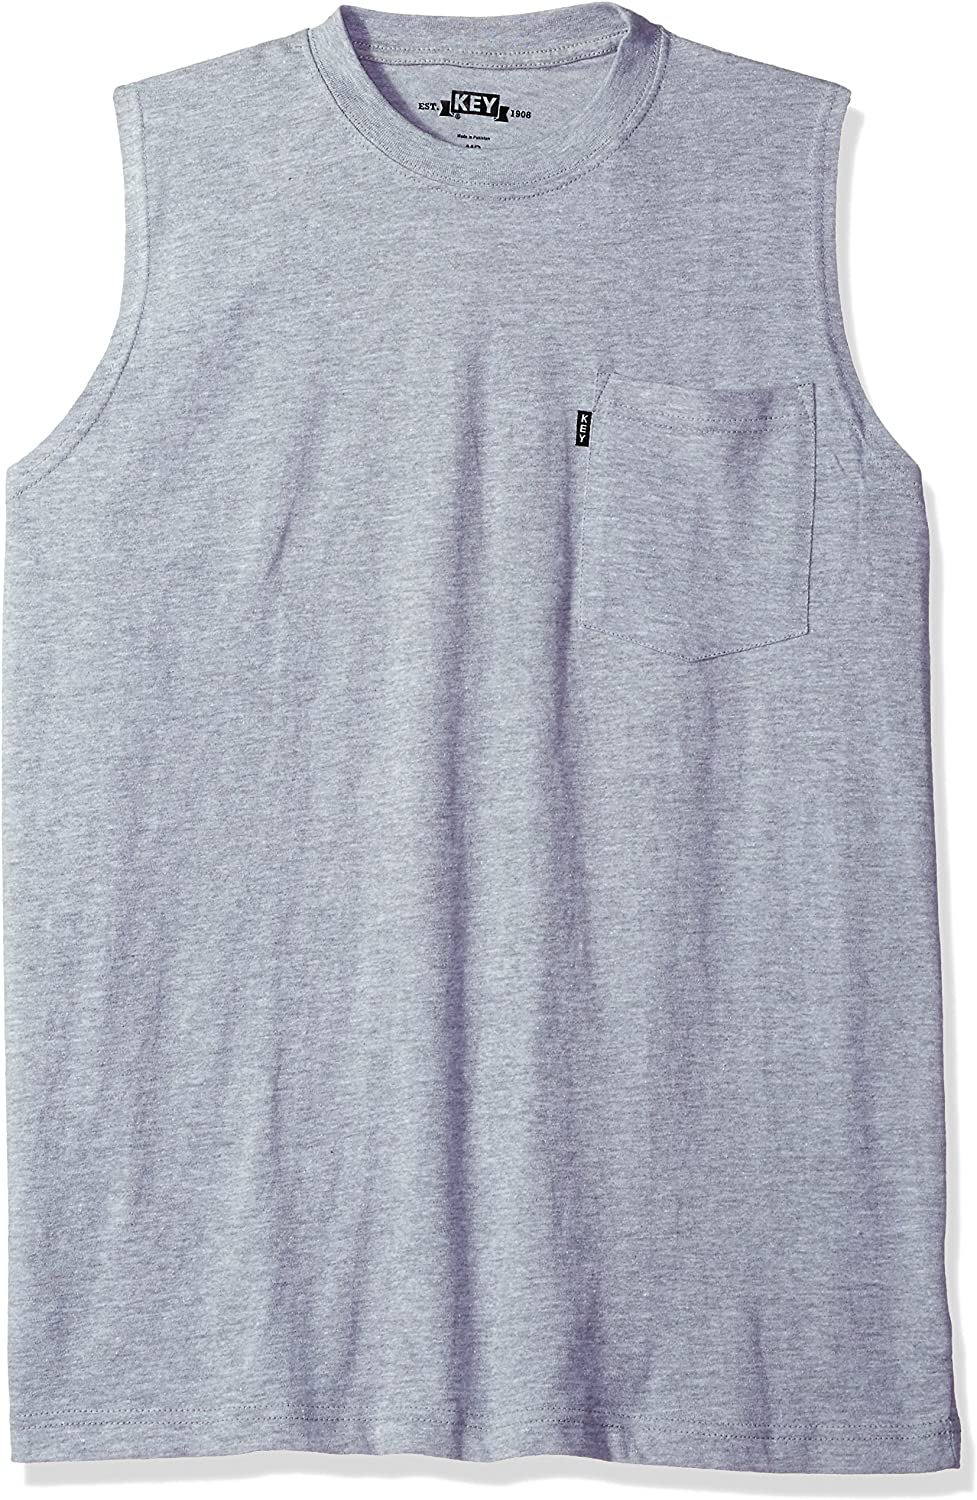 Key Apparel Men's Big and Tall Sleeveless Tee Big & Tall: Clothing